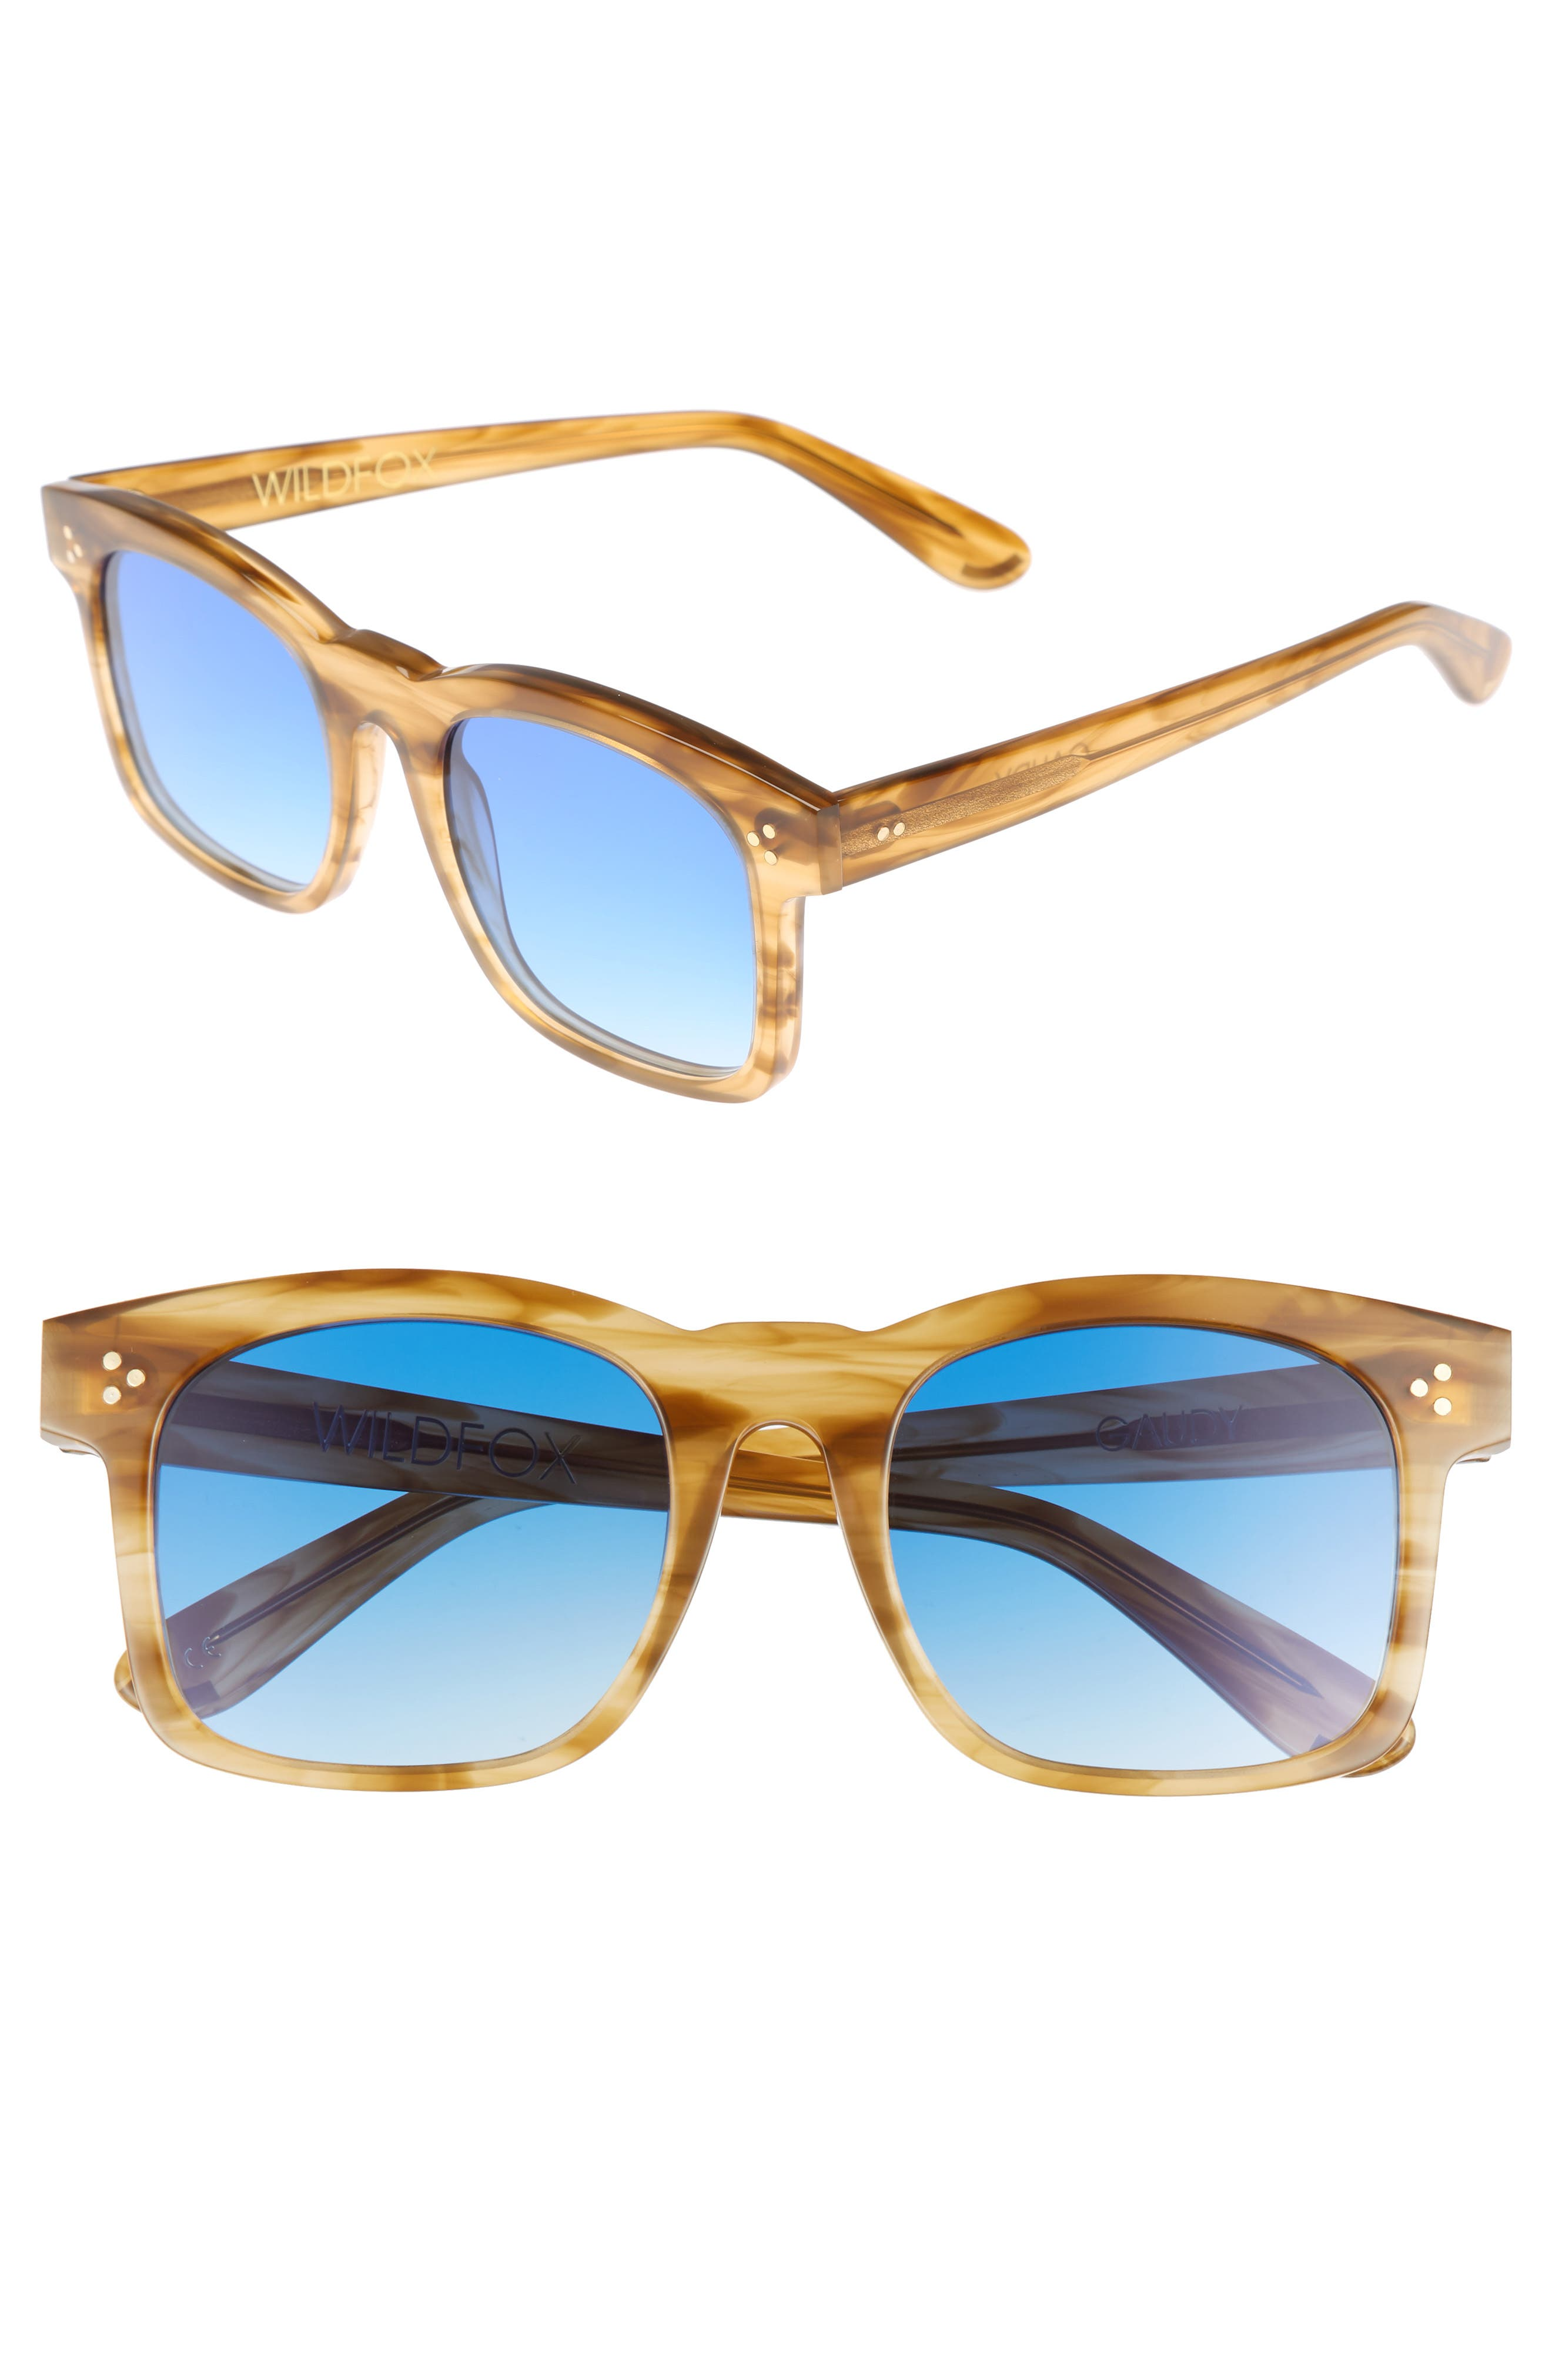 WILDFOX, Gaudy Zero 51mm Flat Square Sunglasses, Main thumbnail 1, color, SIERRA TORTOISE